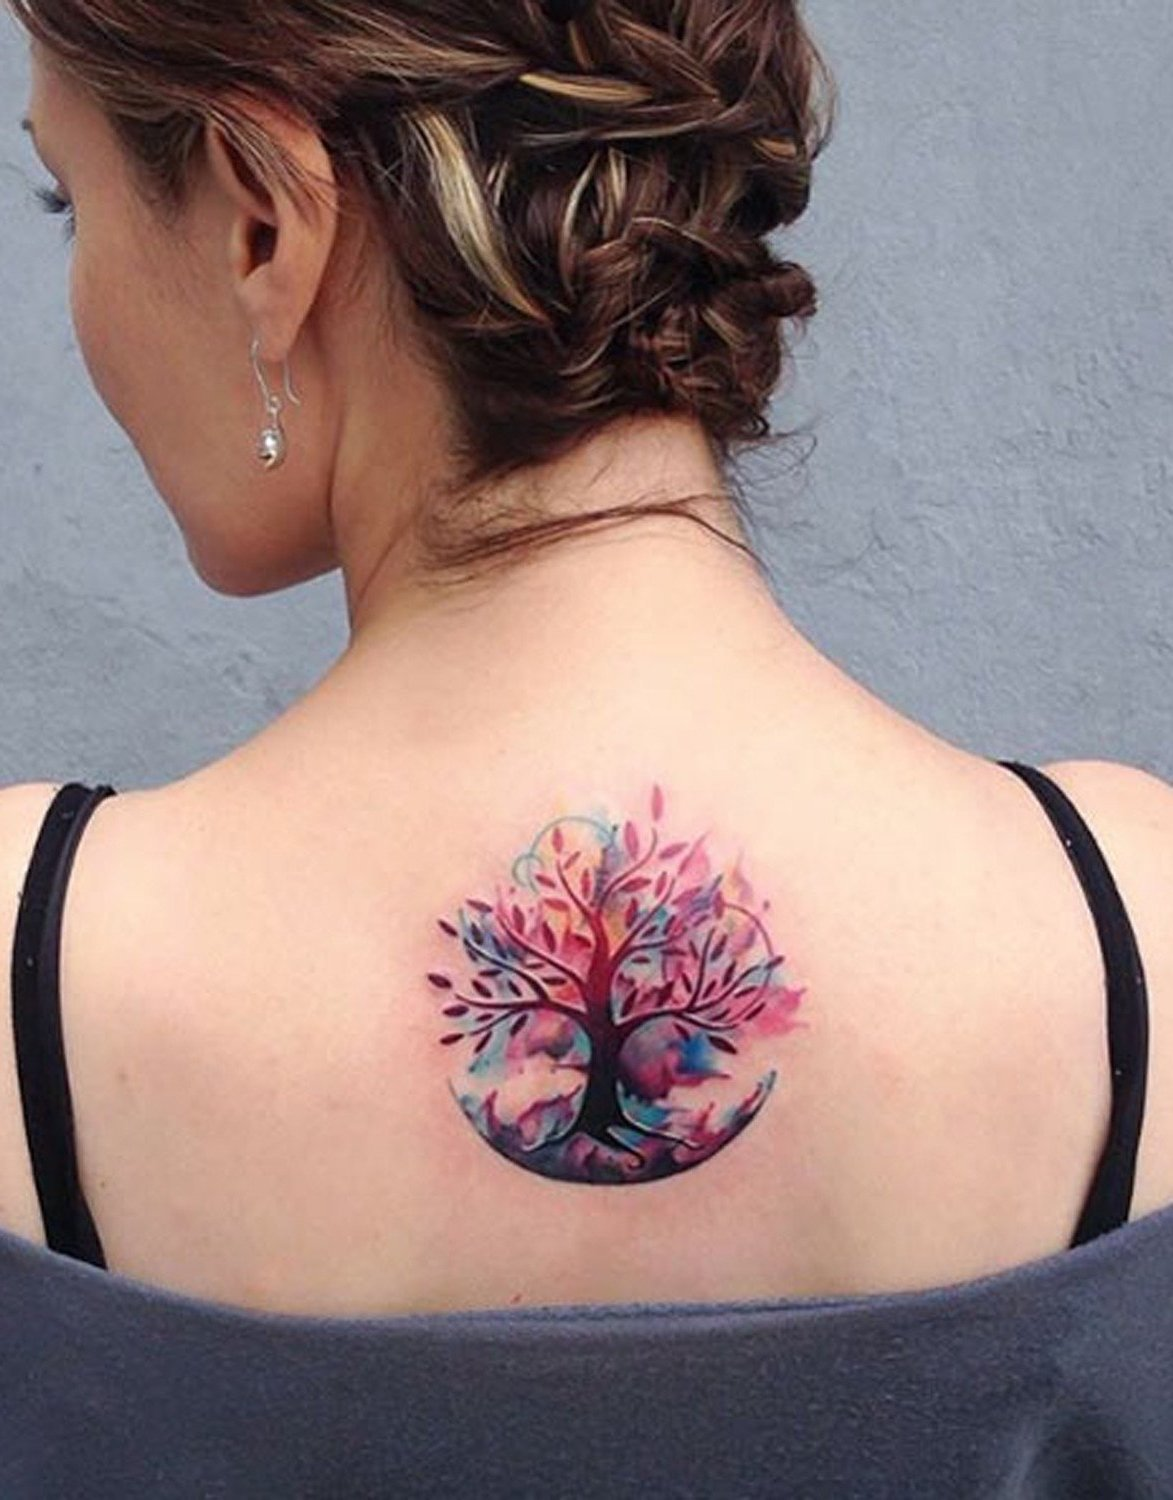 Tattoo Ideen - Frauen Wasserfarbentattoo